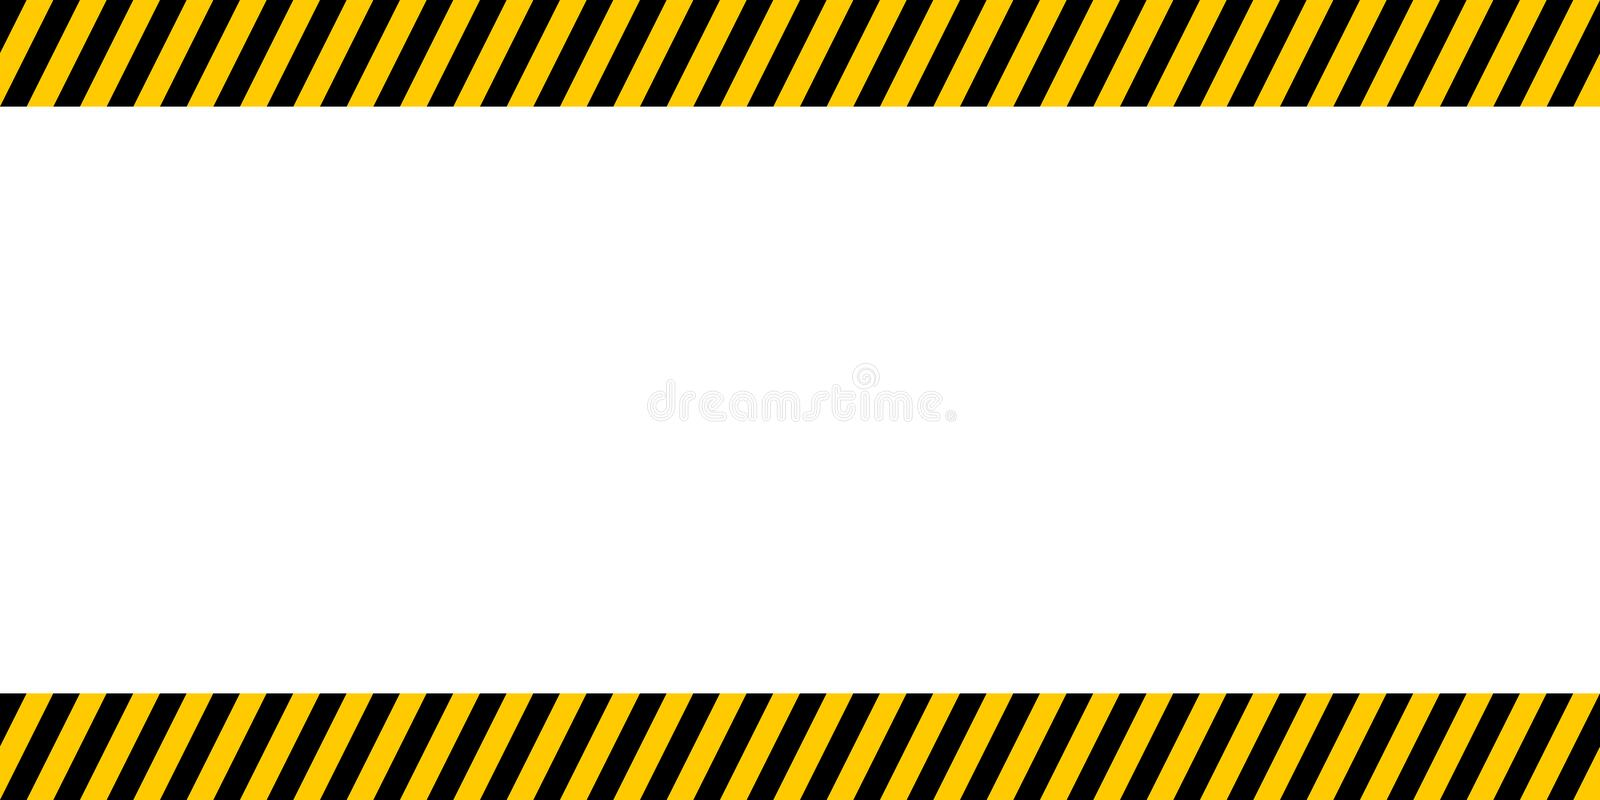 Bulletin board important announcements, yellow and black diagonal stripes, vector warn caution construction danger border stock illustration